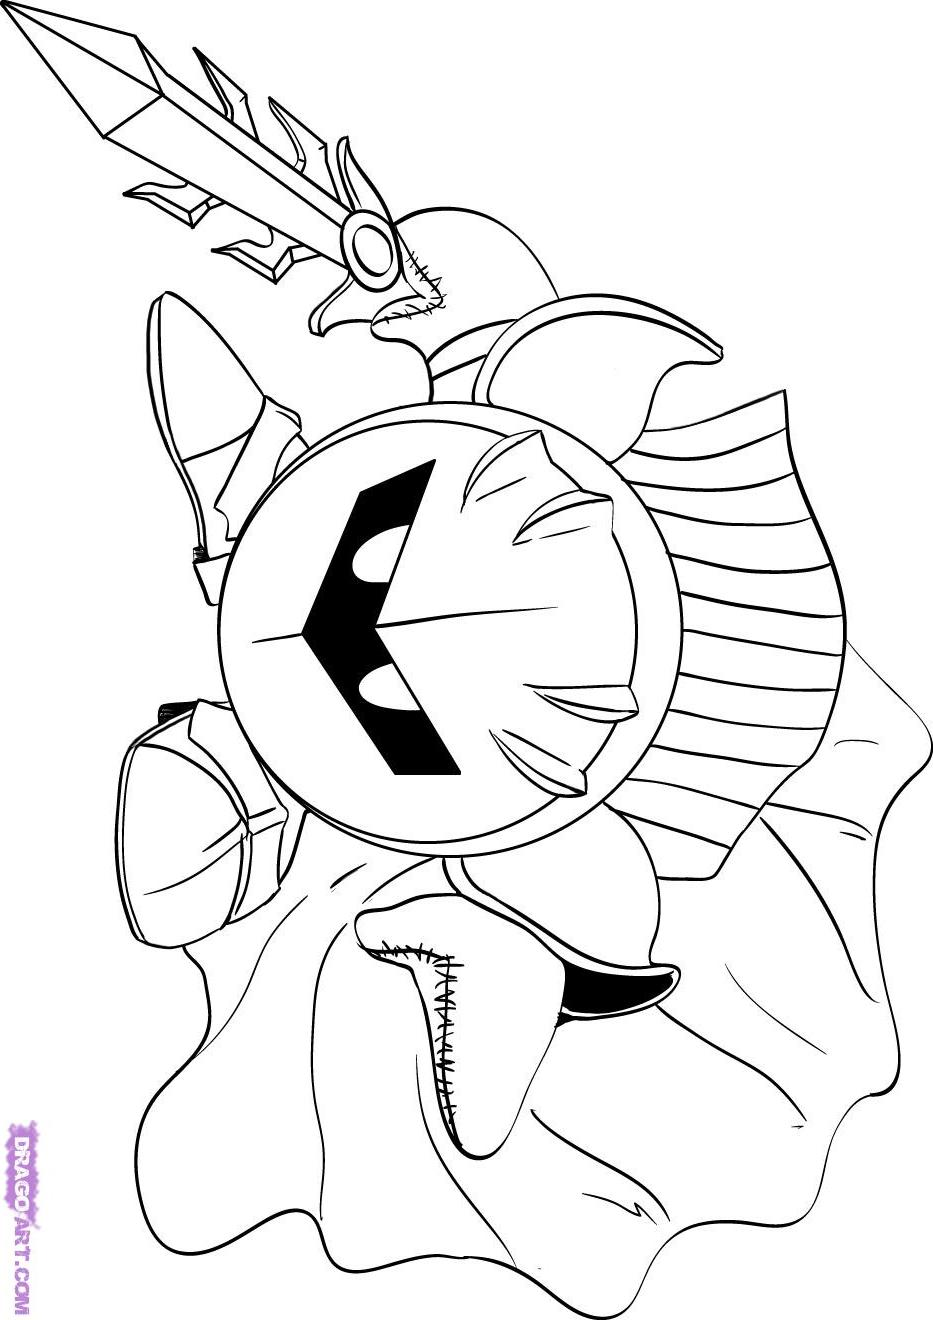 kirby star allies coloring pages coloriage fr coloriage de kirby et meta knight pages allies coloring kirby star